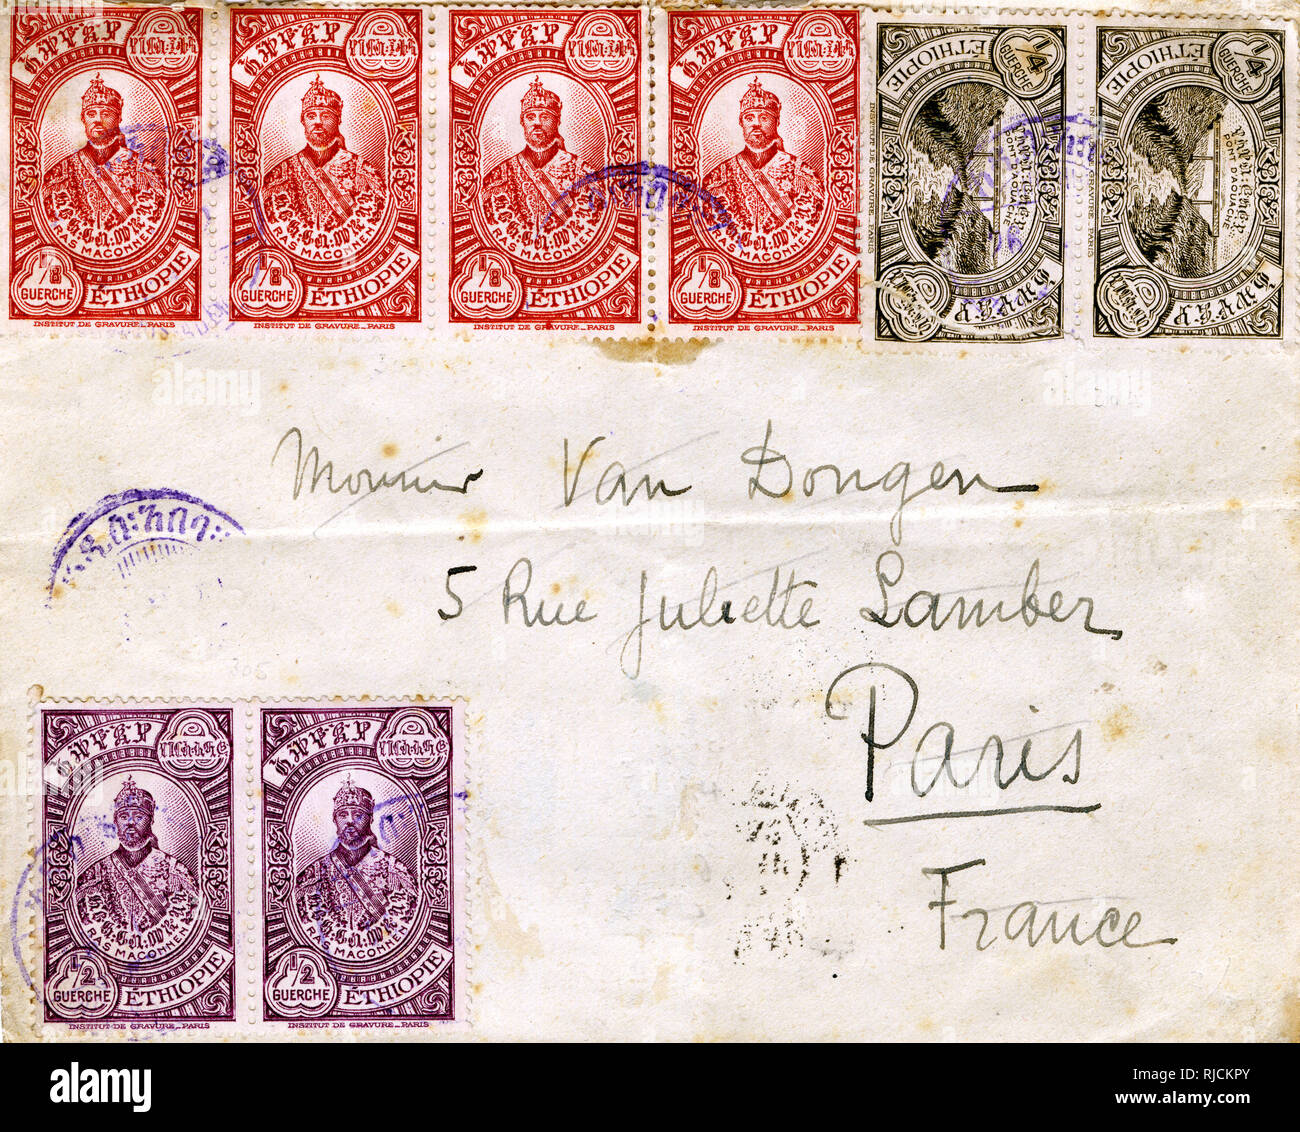 Envelope with stamps from the Royal Hotel, Addis Ababa, Ethiopia, to an address in Paris, France. Stock Photo